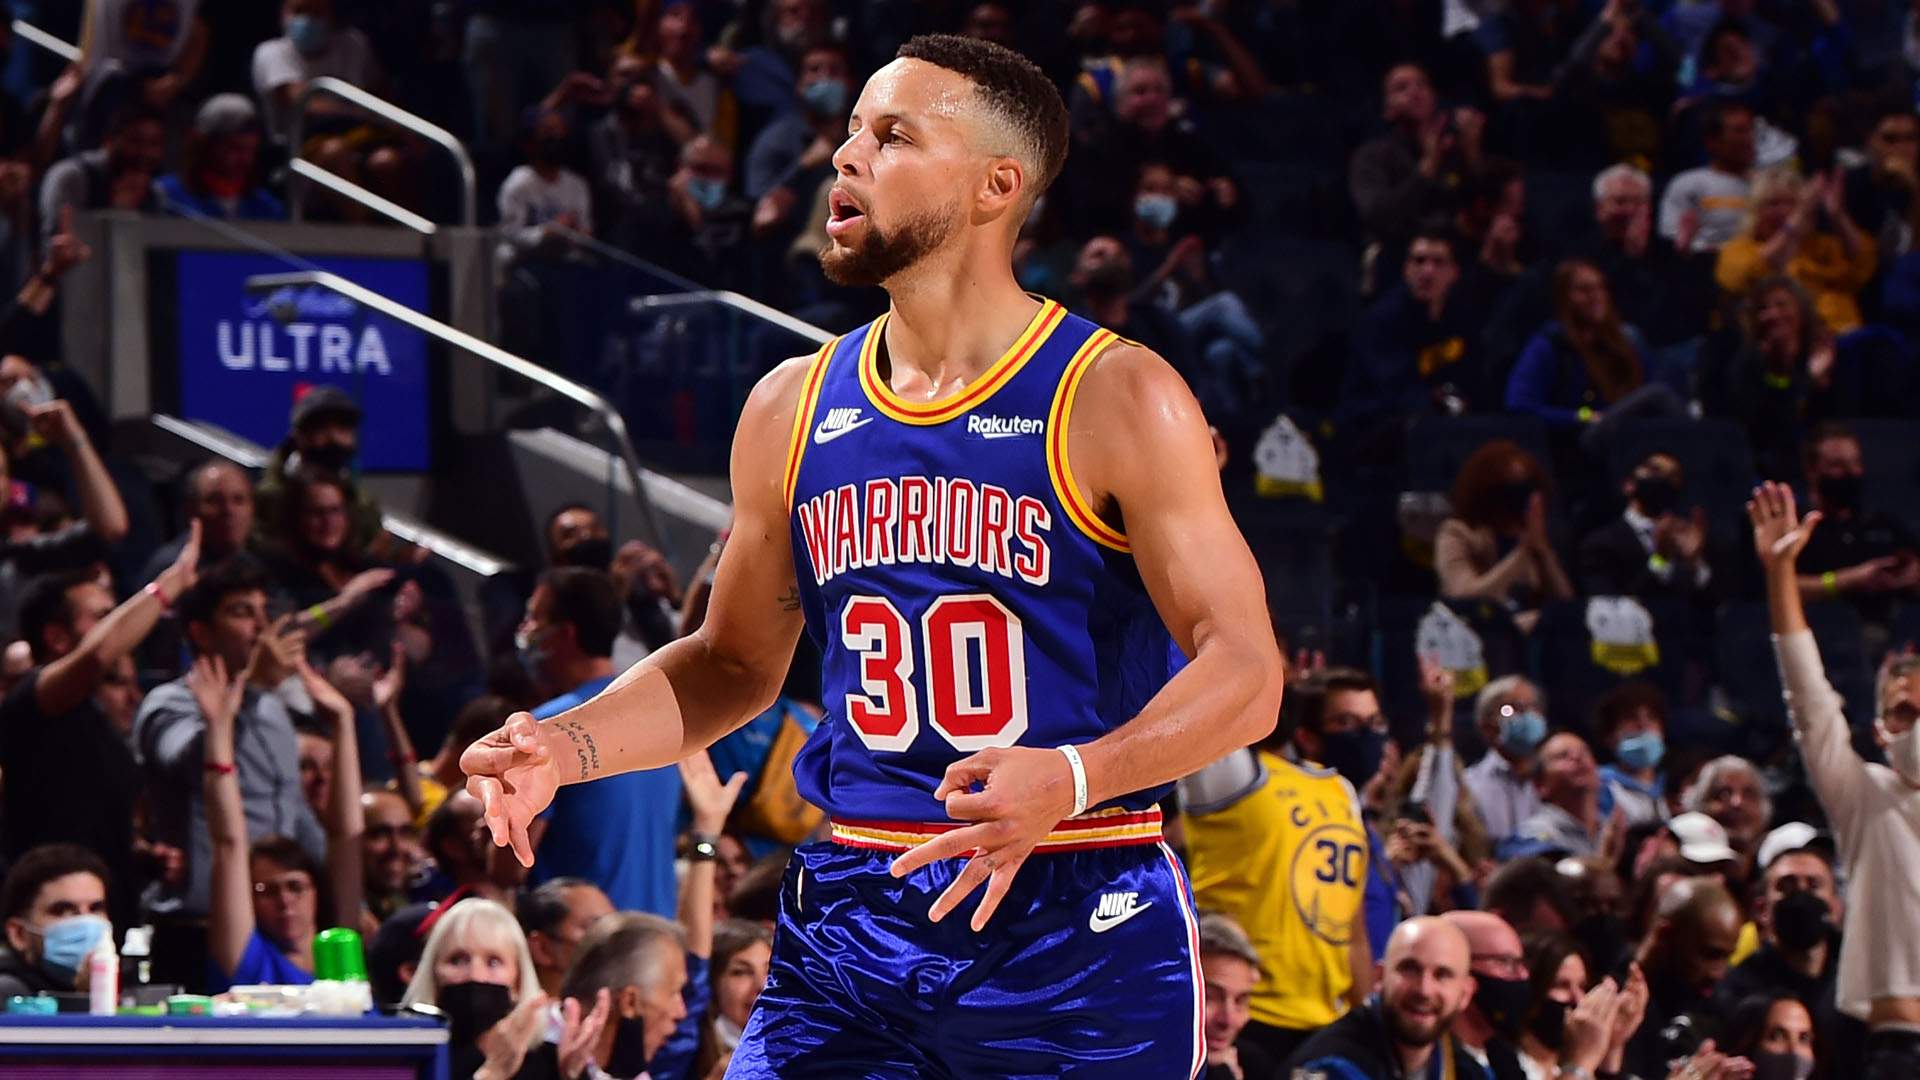 After offseason focused on perfection, Stephen Curry could be even more unstoppable